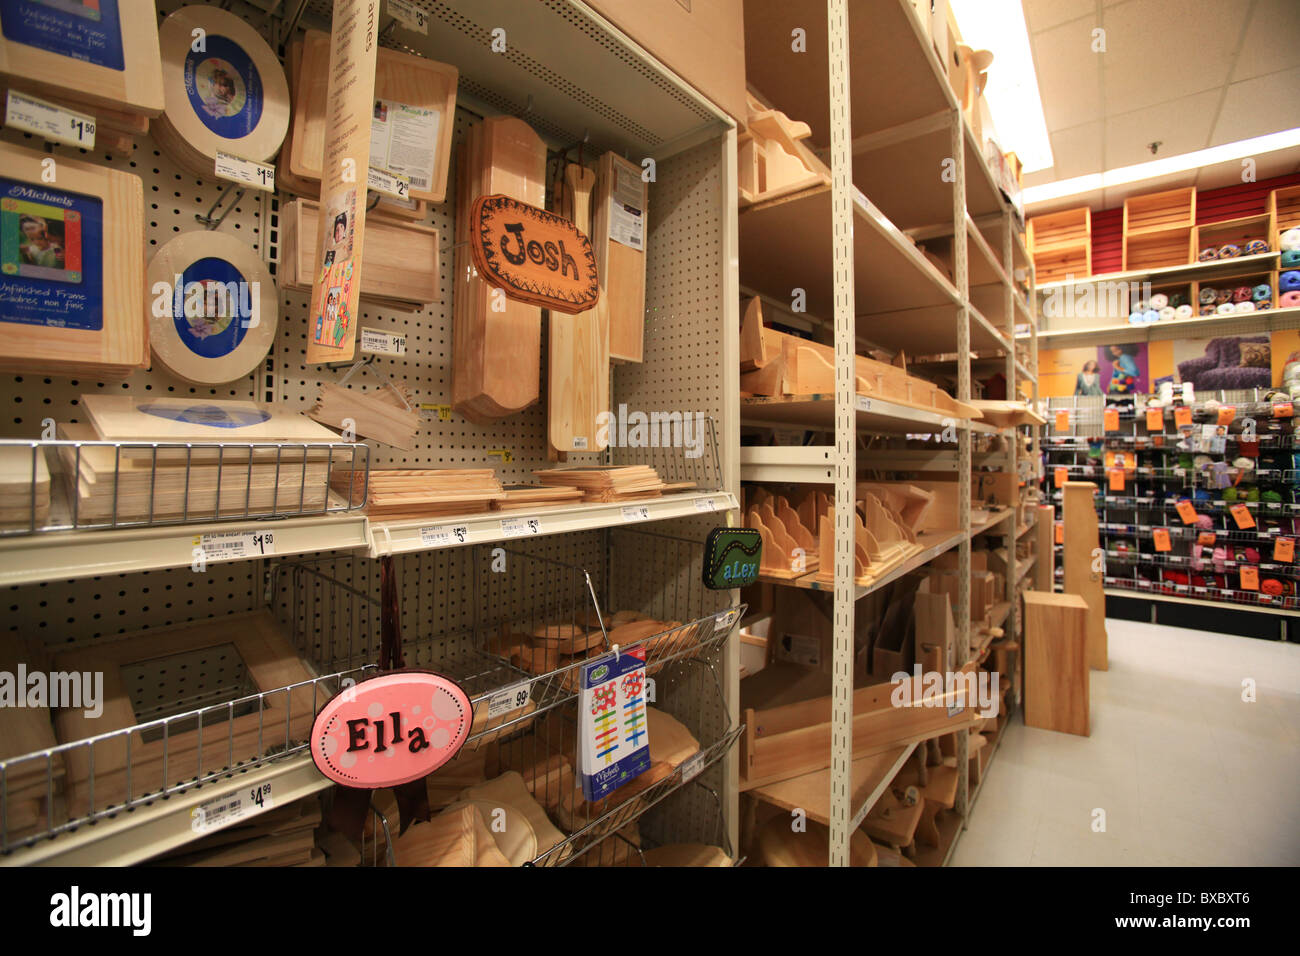 Wooden Crafts For Sale In Michael S Store In Ontario Canada Stock